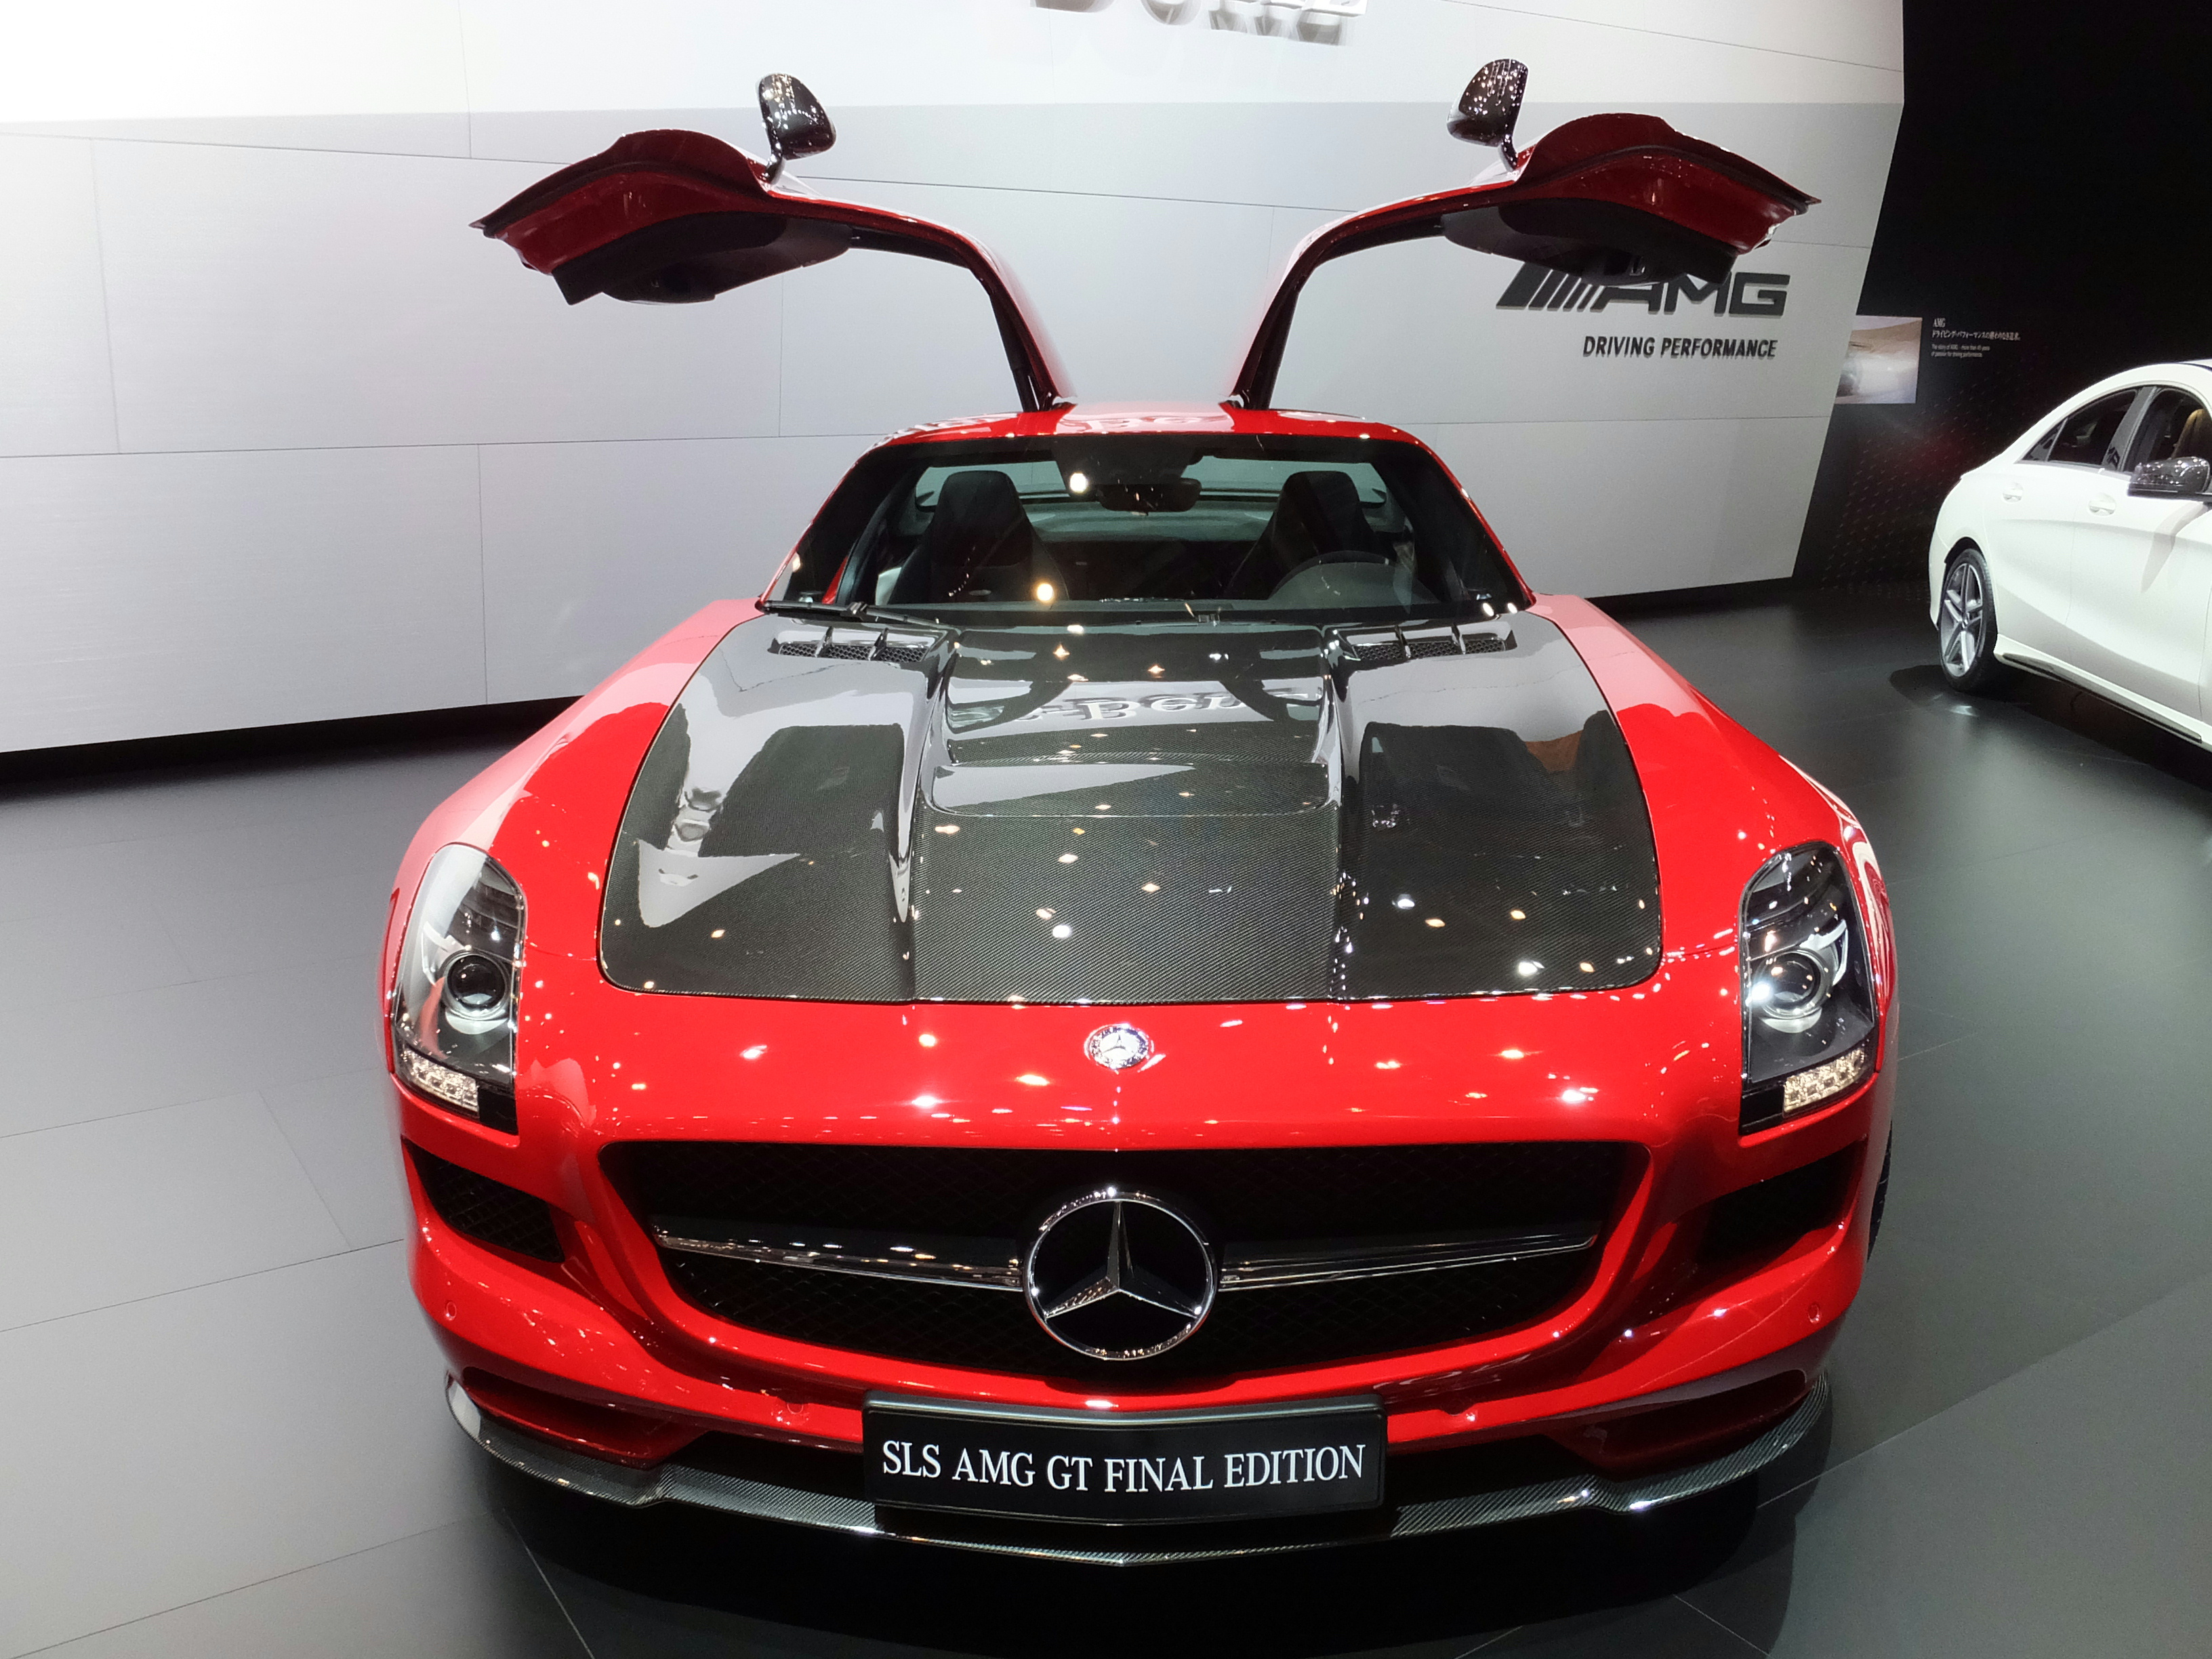 Mercedes-Benz Sls Amg Gt Final Edition #12